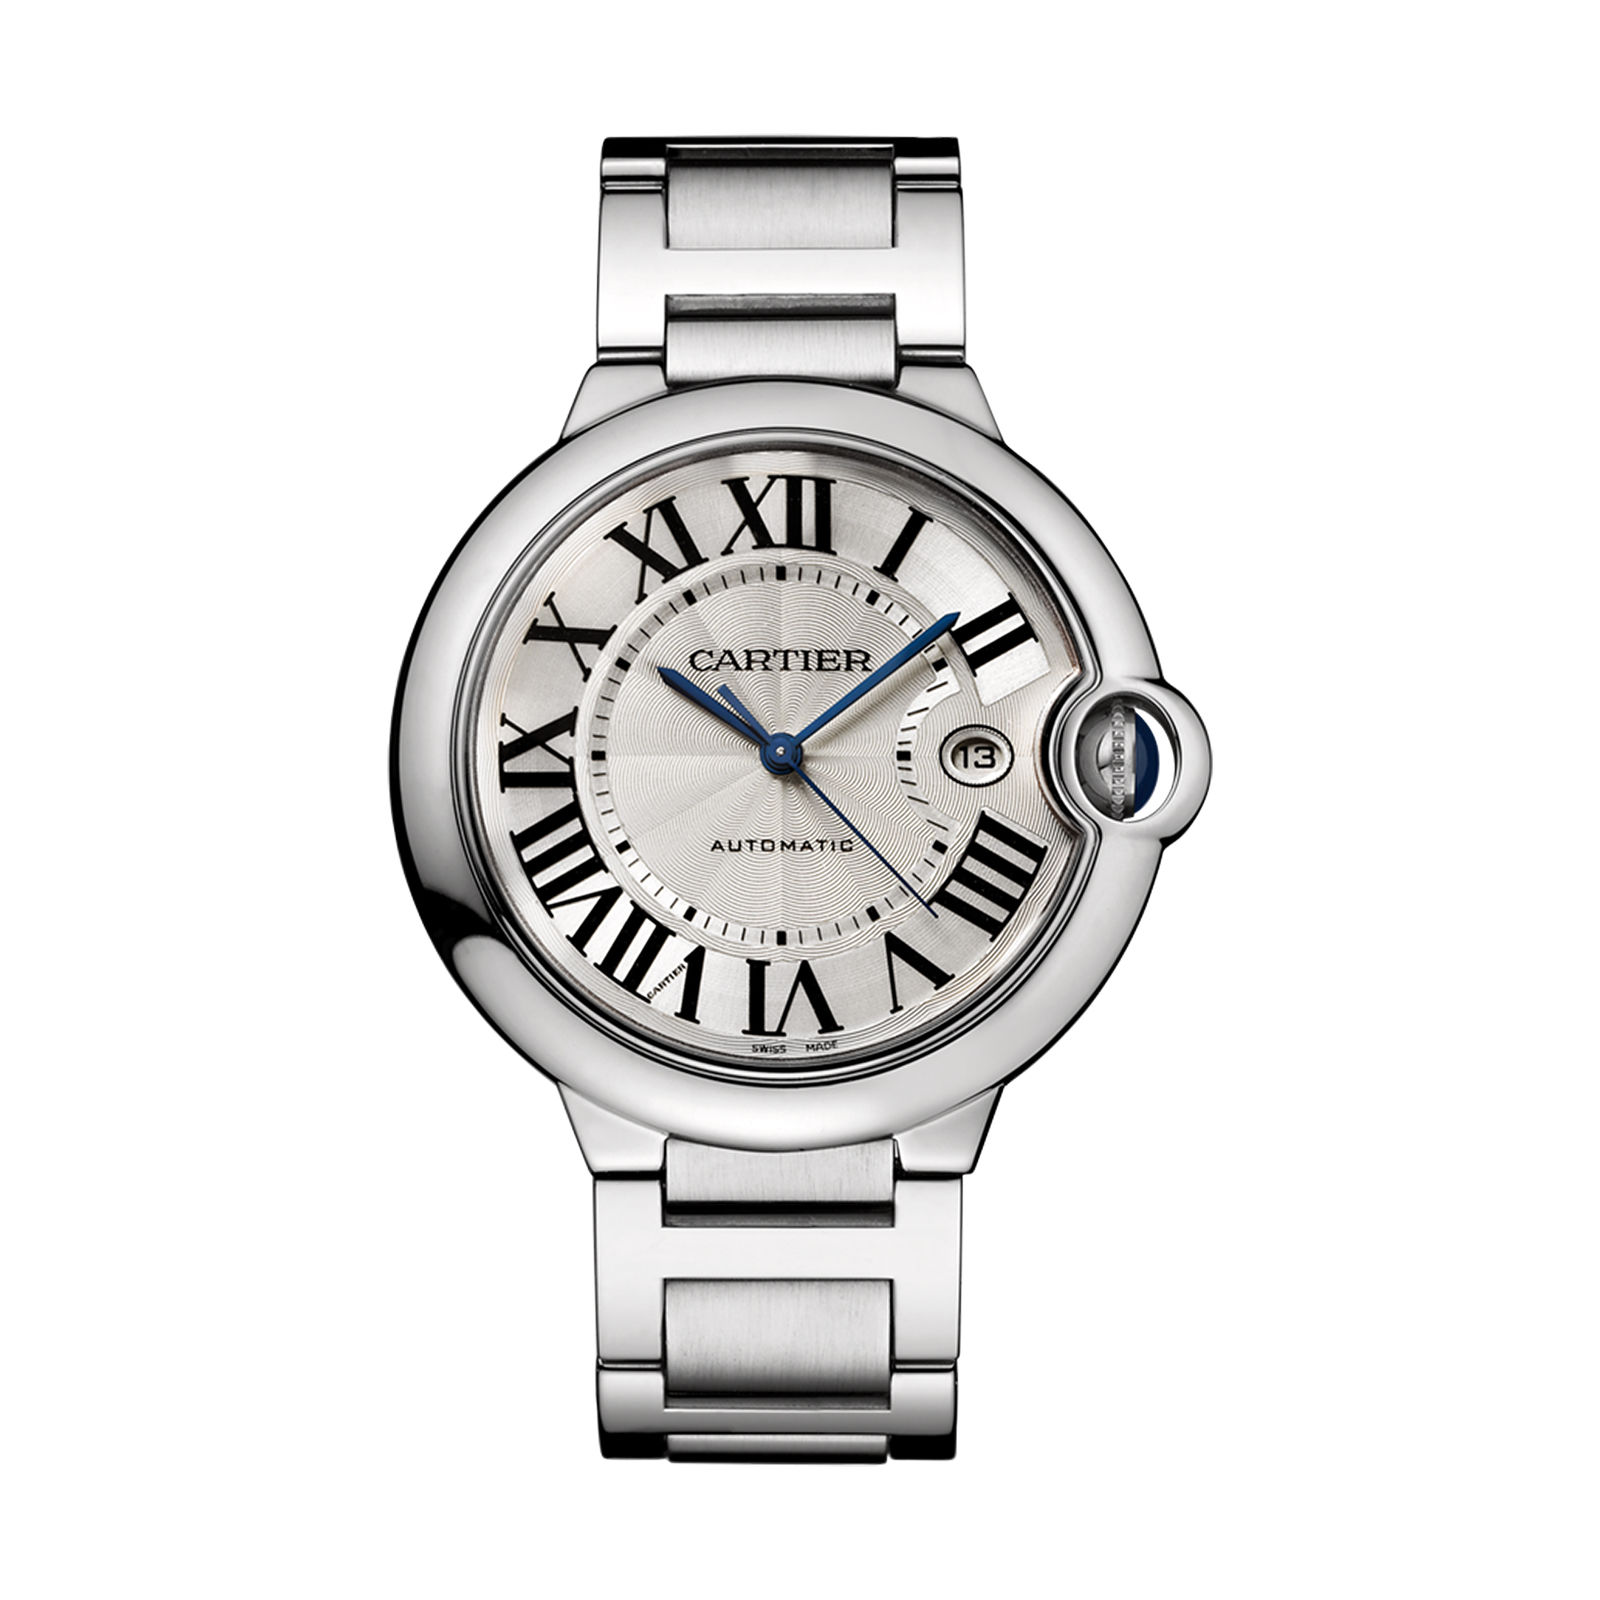 Cartier Ballon Bleu de Cartier watch, 42 mm